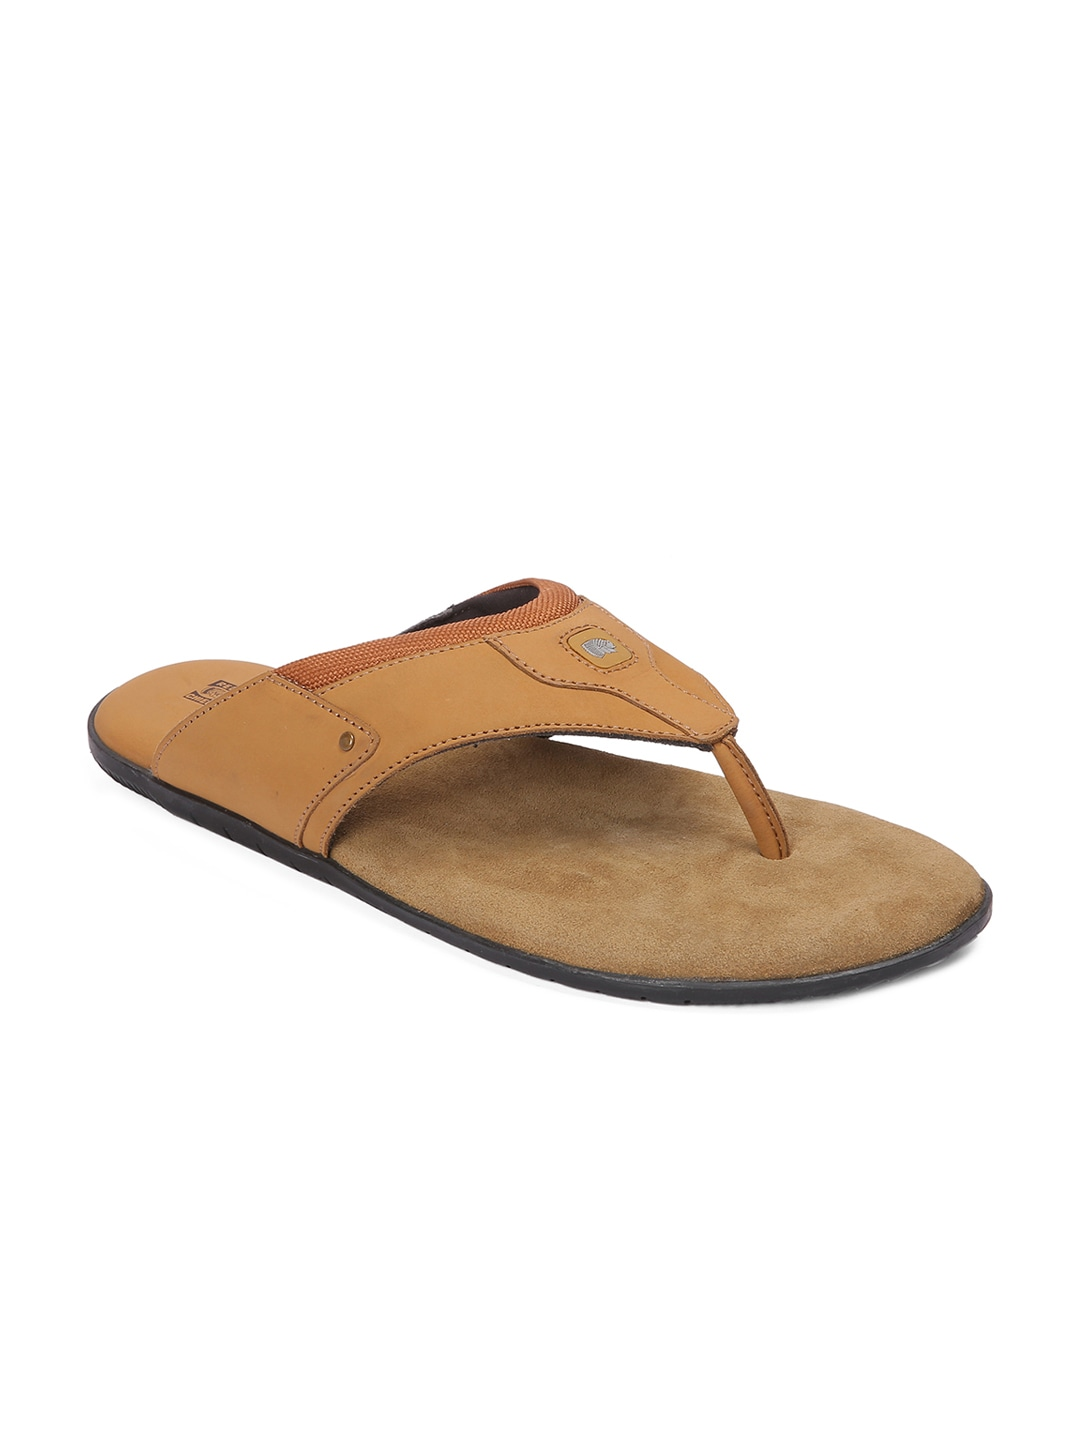 c7de90e91d2 Red Chief Footwear - Buy Red Chief Shoes and Sandals Online in India